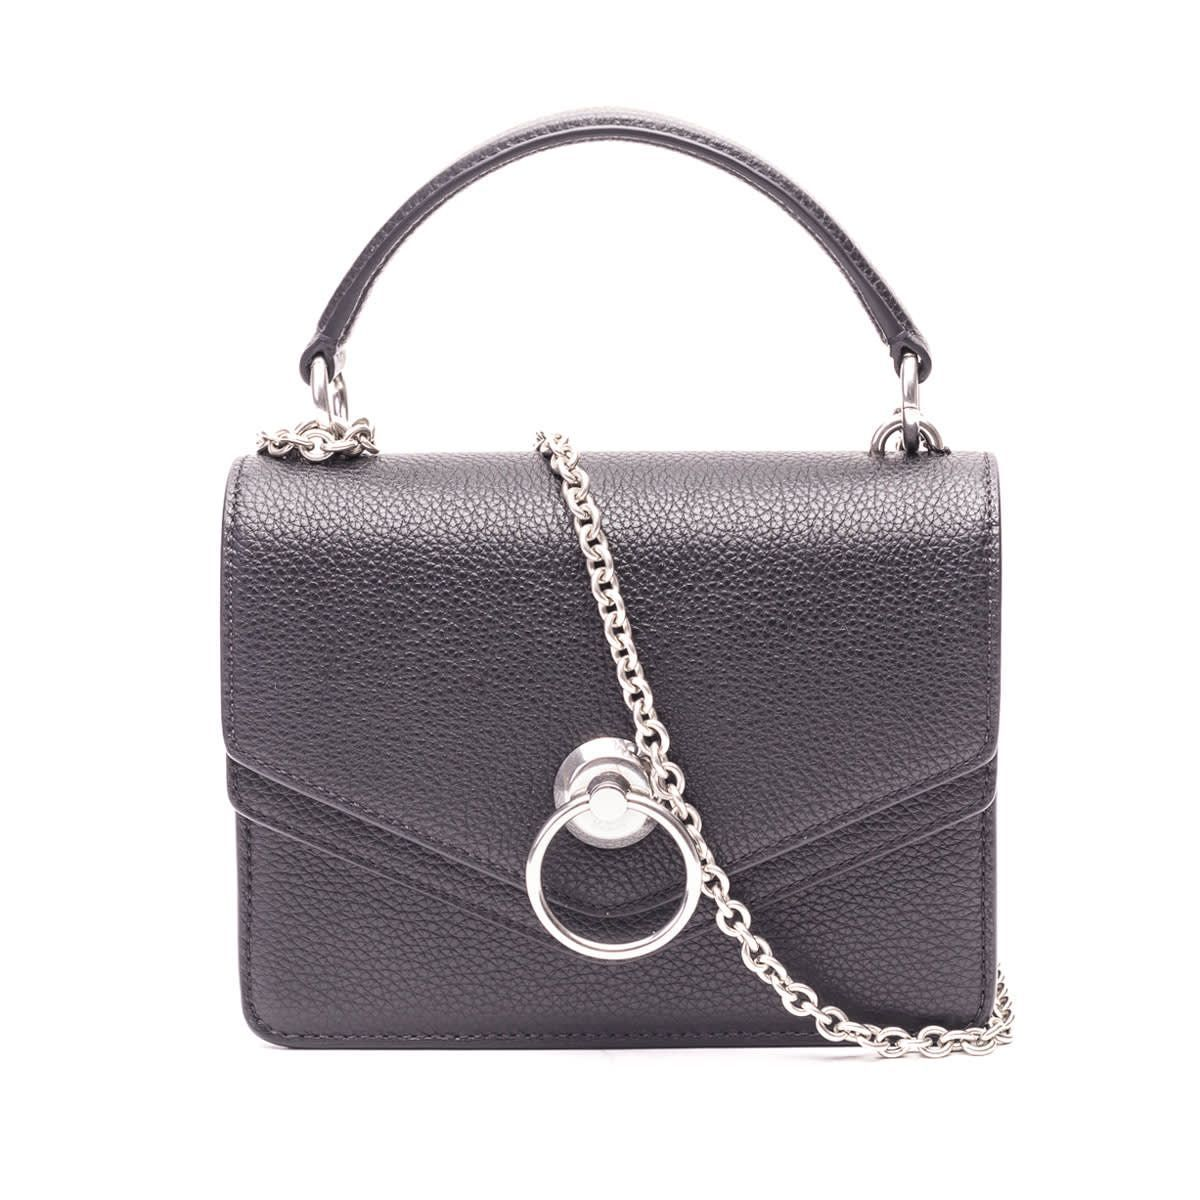 MULBERRY BAG. #mulberry #bags #shoulder bags #hand bags #leather #mulberrybag MULBERRY BAG. #mulberry #bags #shoulder bags #hand bags #leather #mulberrybag MULBERRY BAG. #mulberry #bags #shoulder bags #hand bags #leather #mulberrybag MULBERRY BAG. #mulberry #bags #shoulder bags #hand bags #leather #mulberrybag